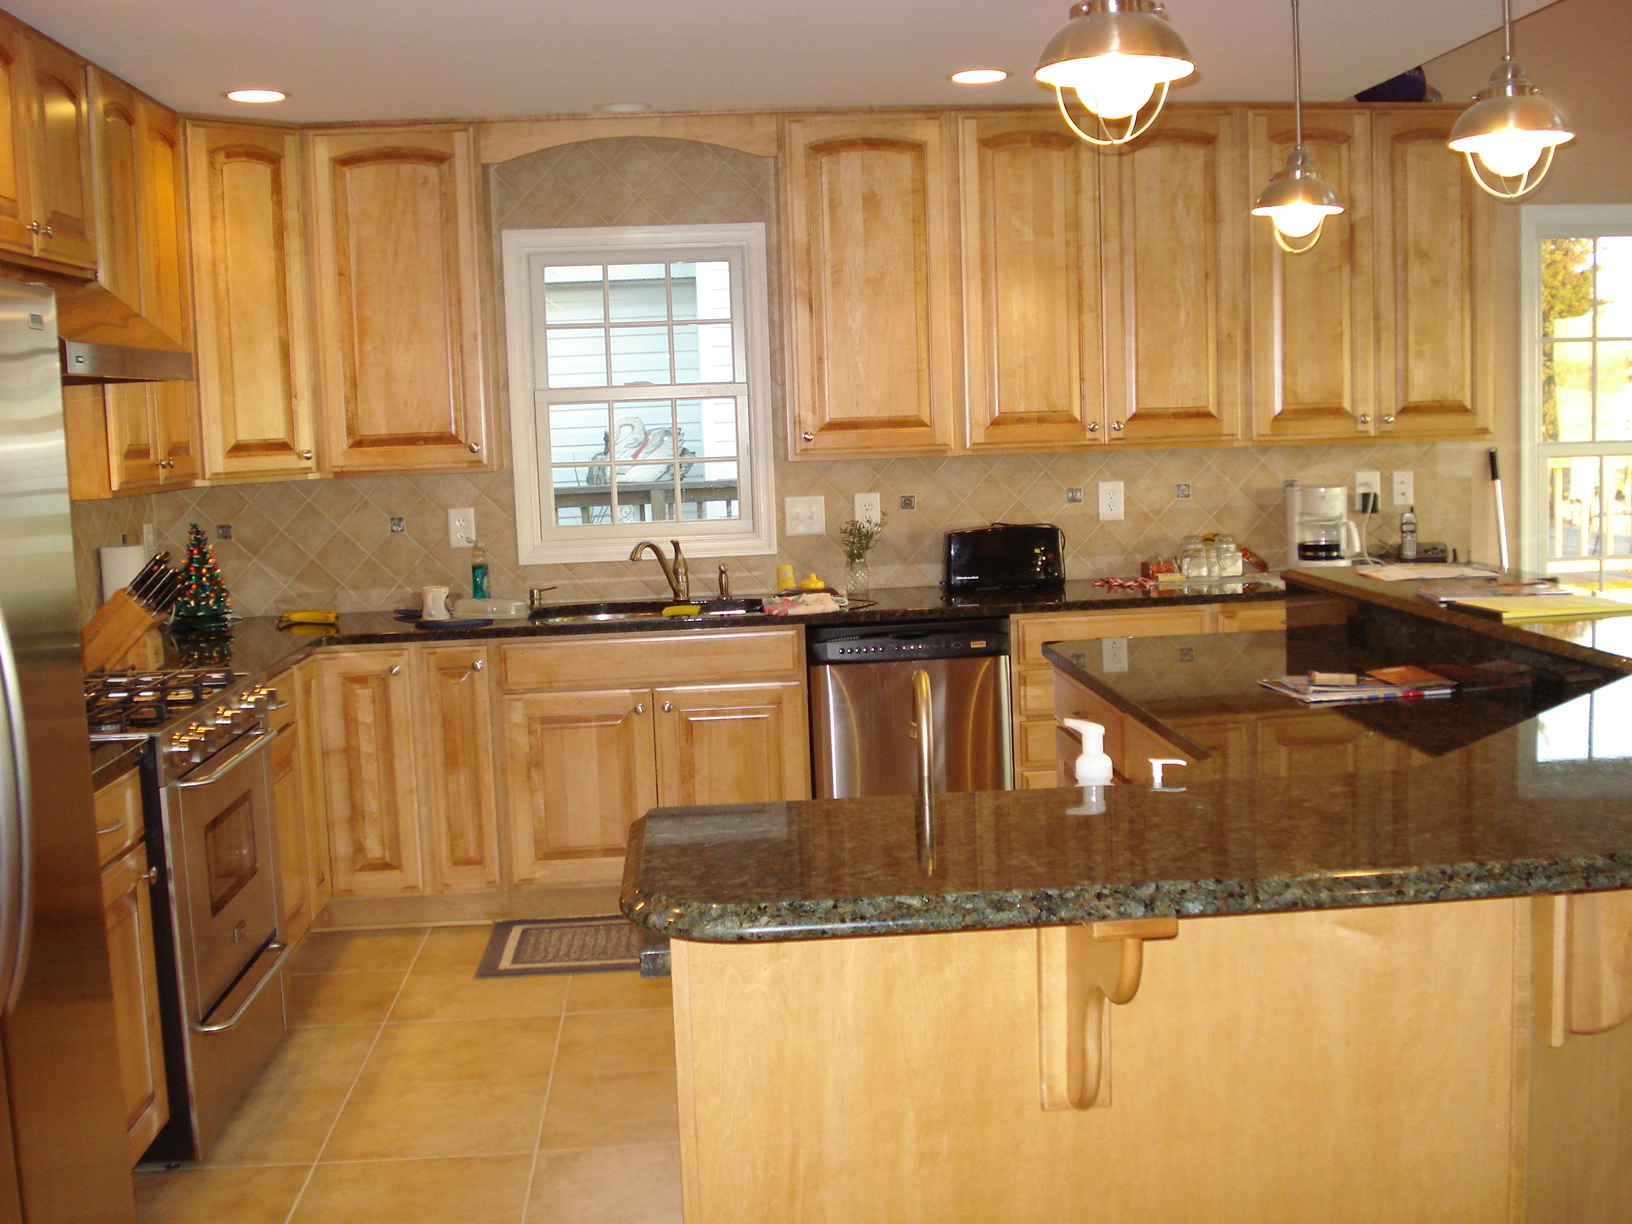 Kitchen Redesign Pictures Lifetime Design And Build Inc Completed Projects